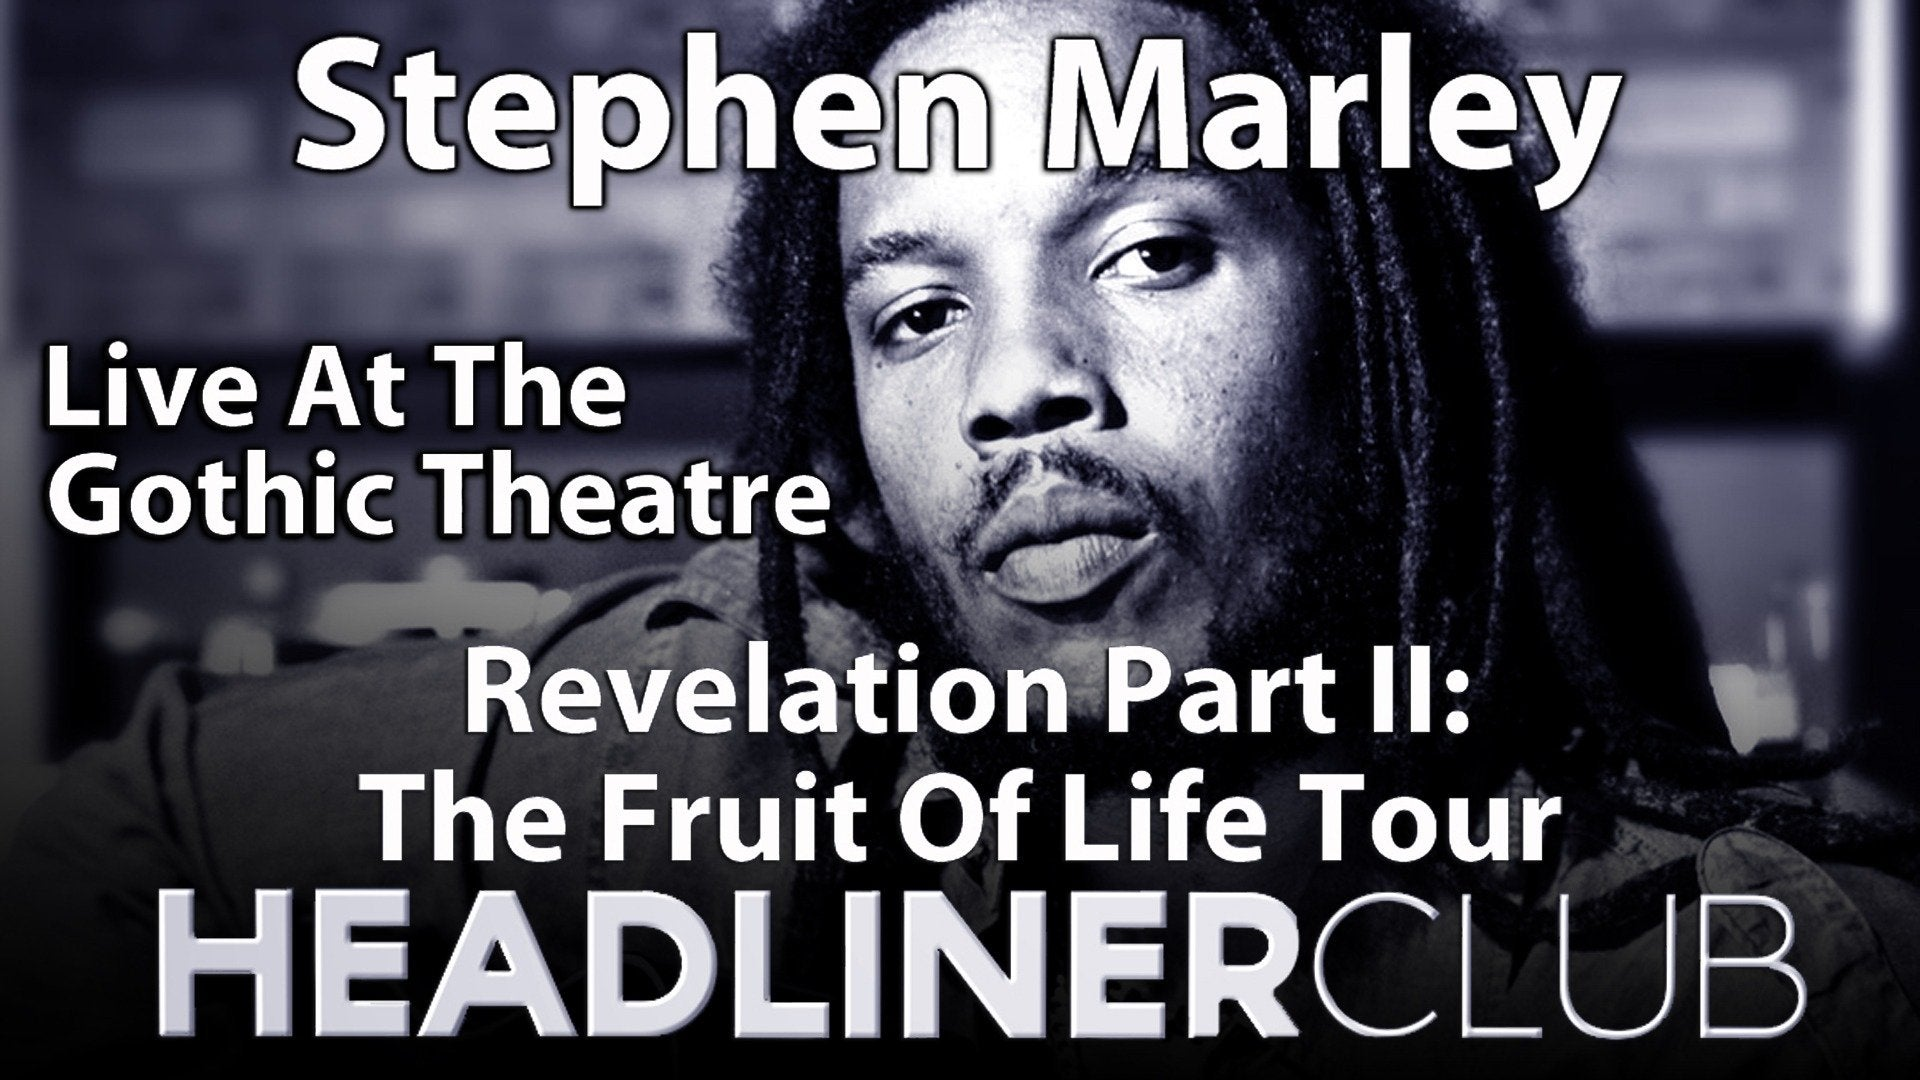 Stephen Marley Live At The Gothic Theatre: Revelation Part II: The Fruit Of Life Tour: Headliner Club